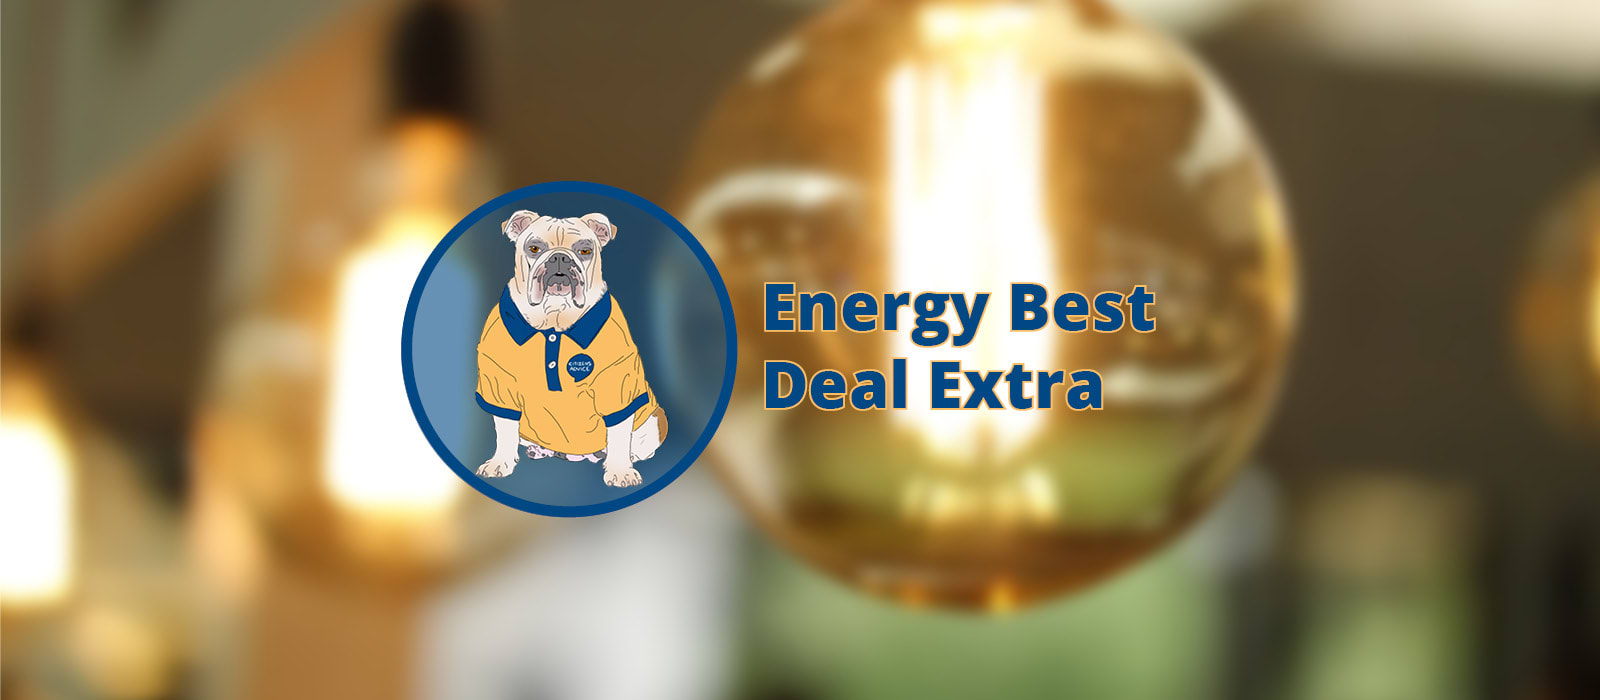 Energy Best Deal Extra and Energy Savings Week